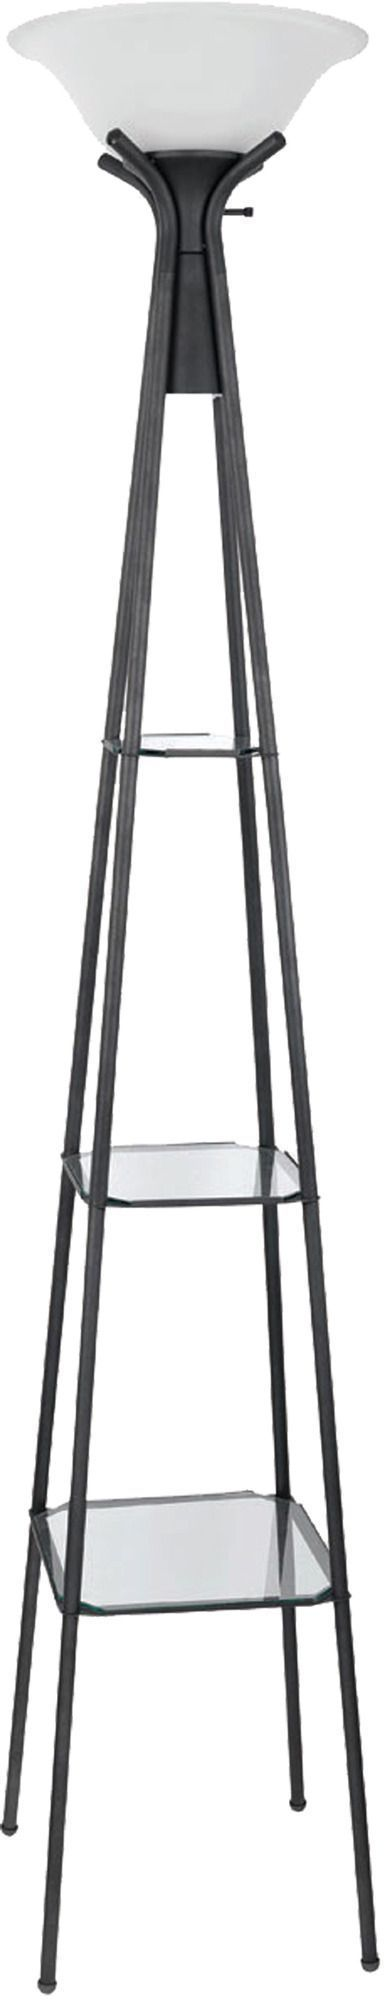 Floor Lamp with 3 Glass Shelves | Coaster Furniture | Home Gallery Stores #coasterfurnitureshelves #coasterfurniturehome